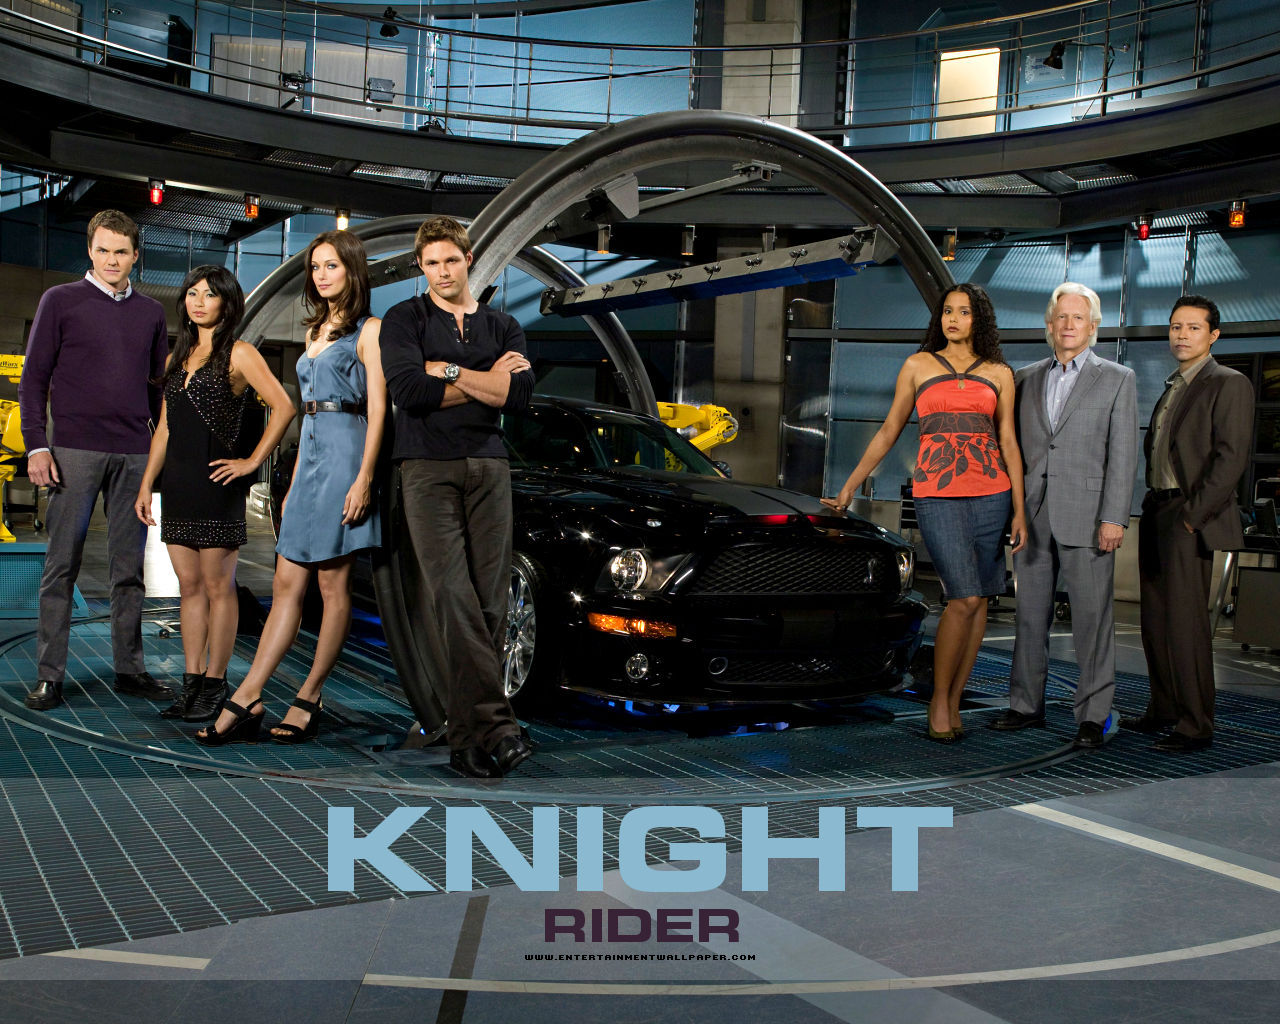 knight rider wallpaper 1280x1024 3jpg 1280x1024